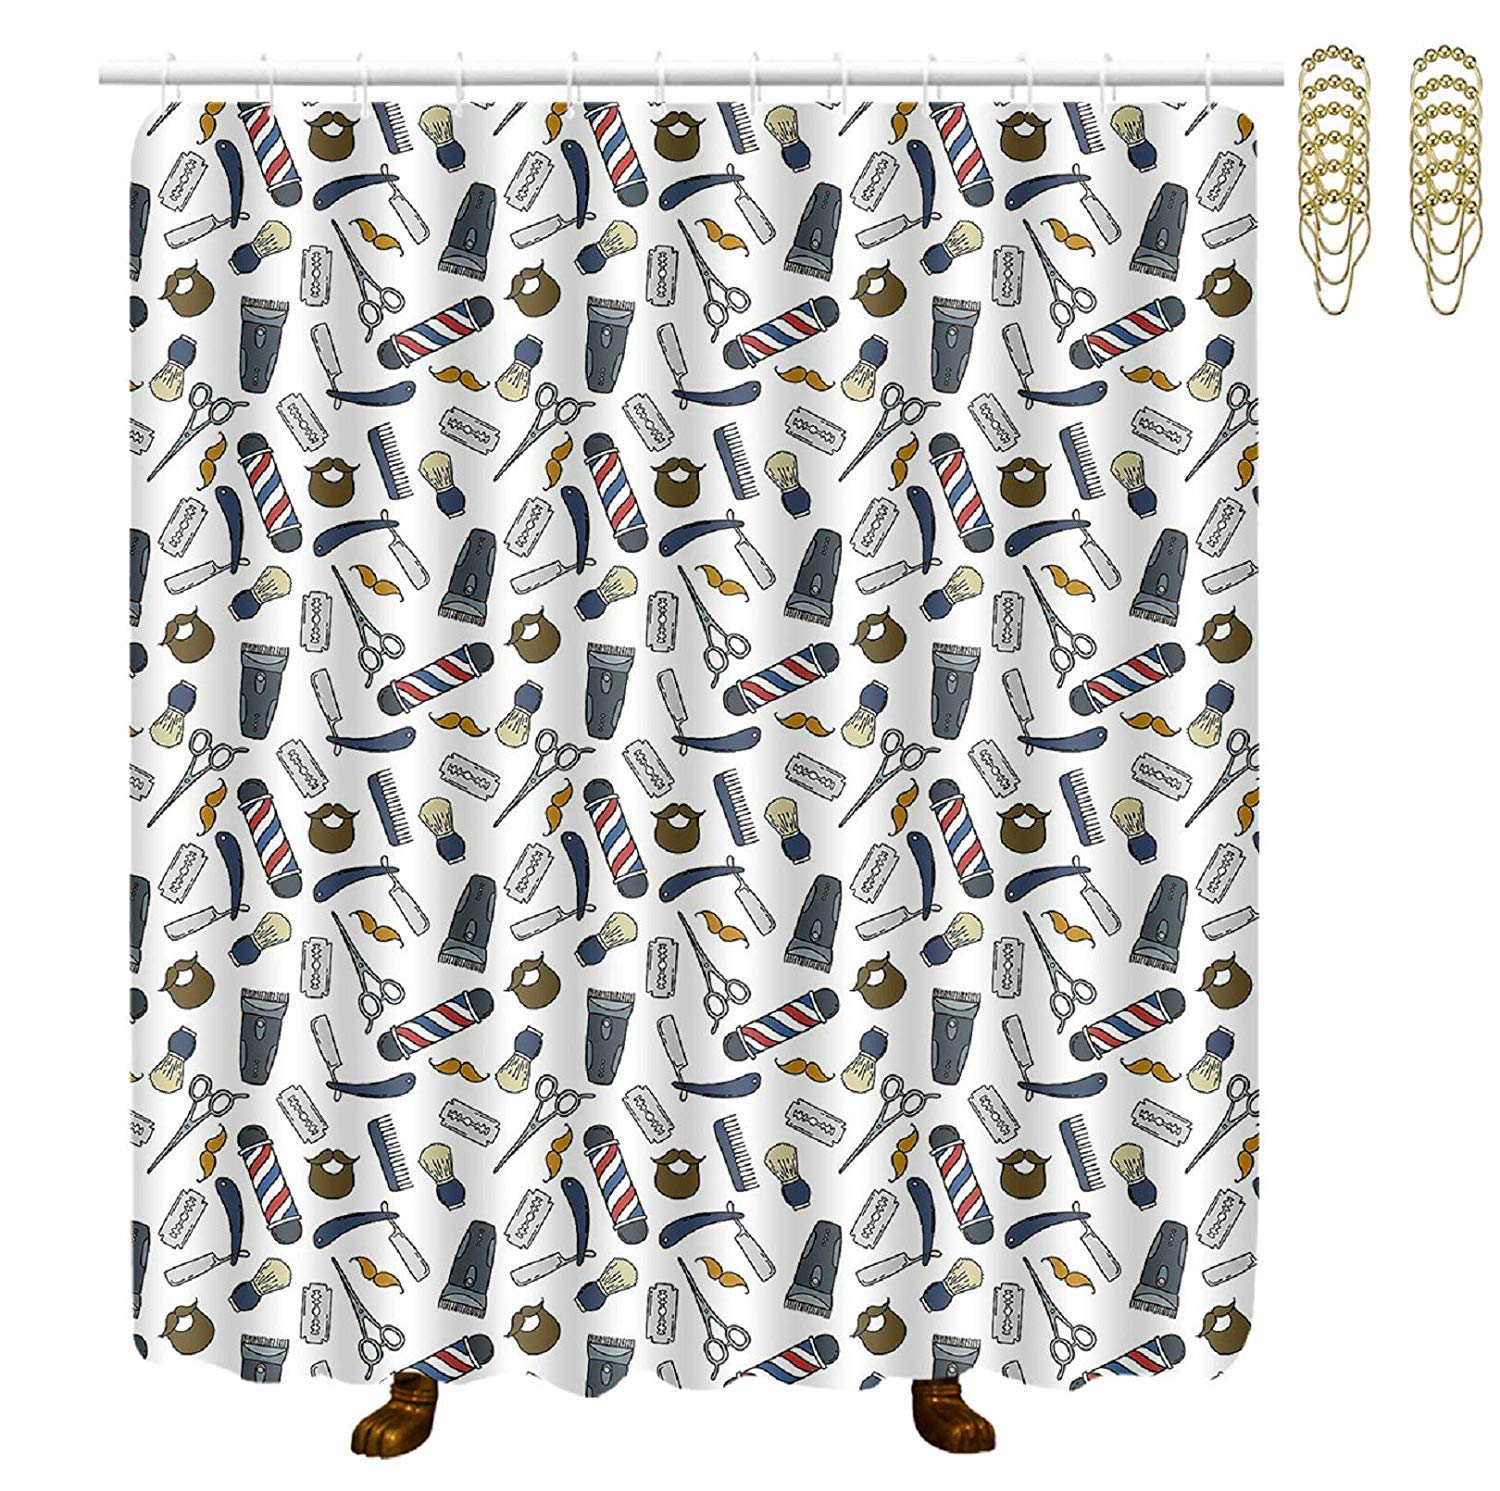 COVASA Decorative Water Repellant Shower Curtain 72x72 Inches Comes with 12 Hooks (Barber Tools)